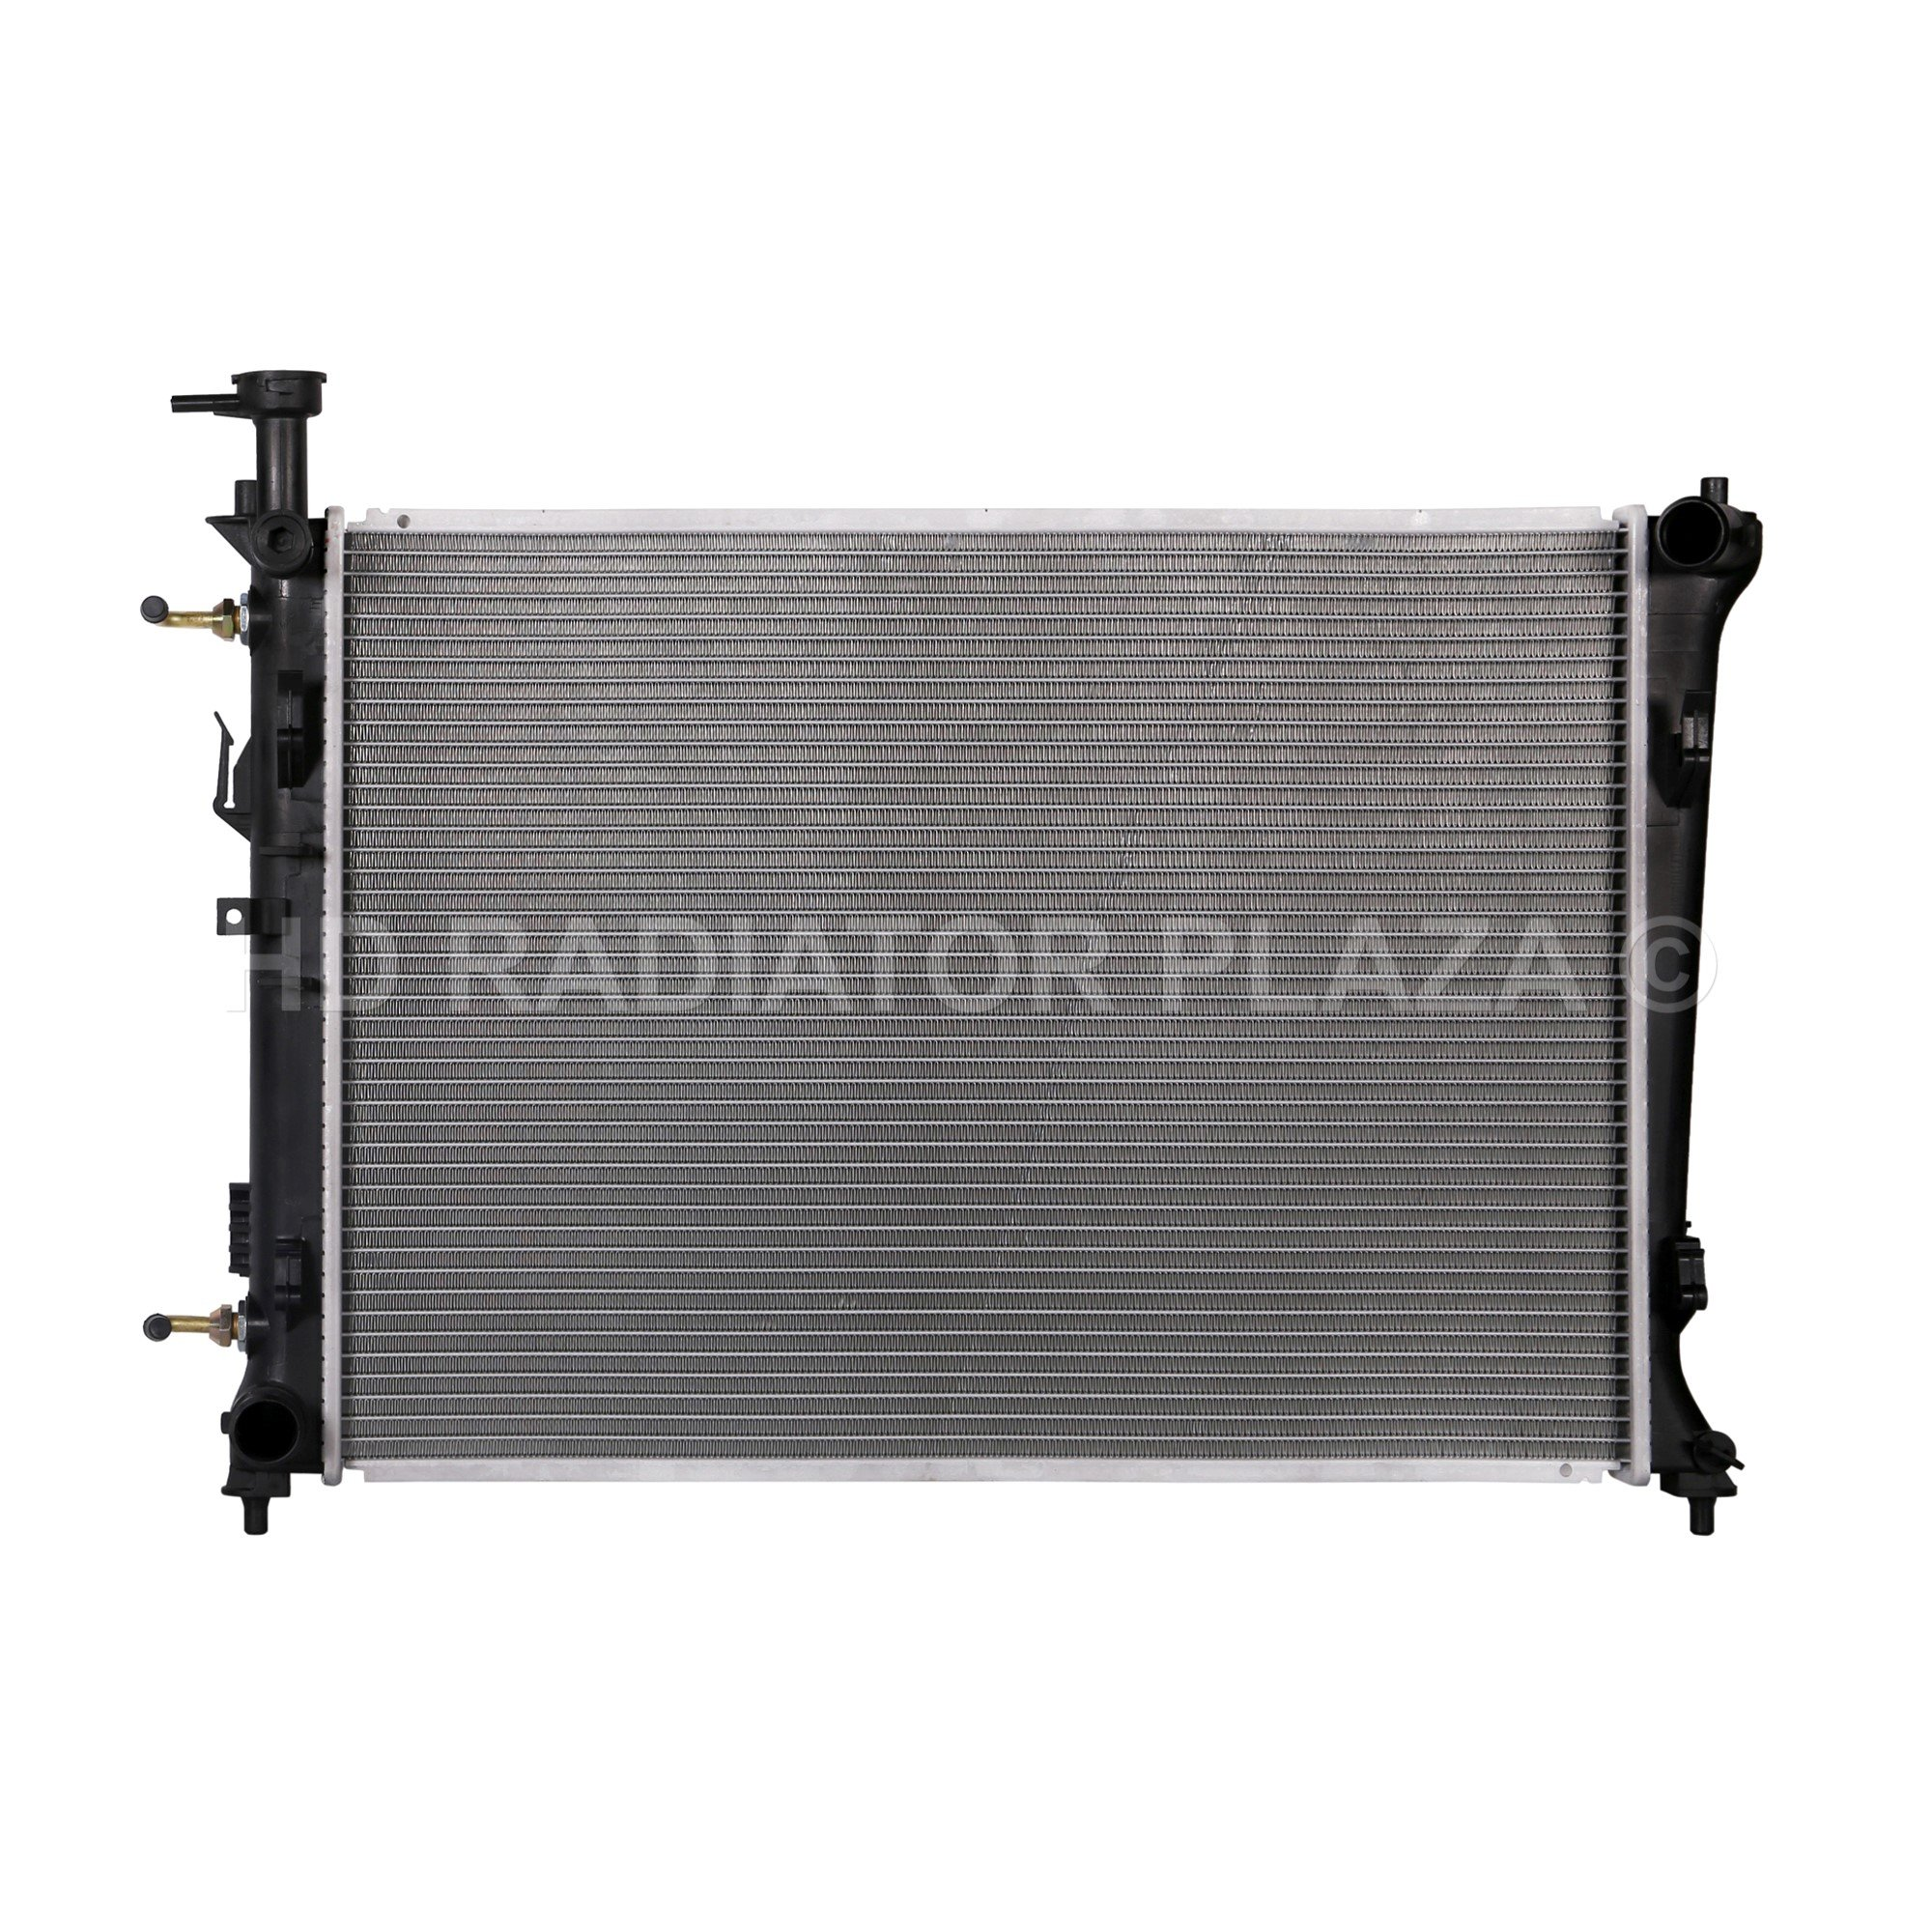 Radiator for 10-13 Kia Forte, I4 / V6